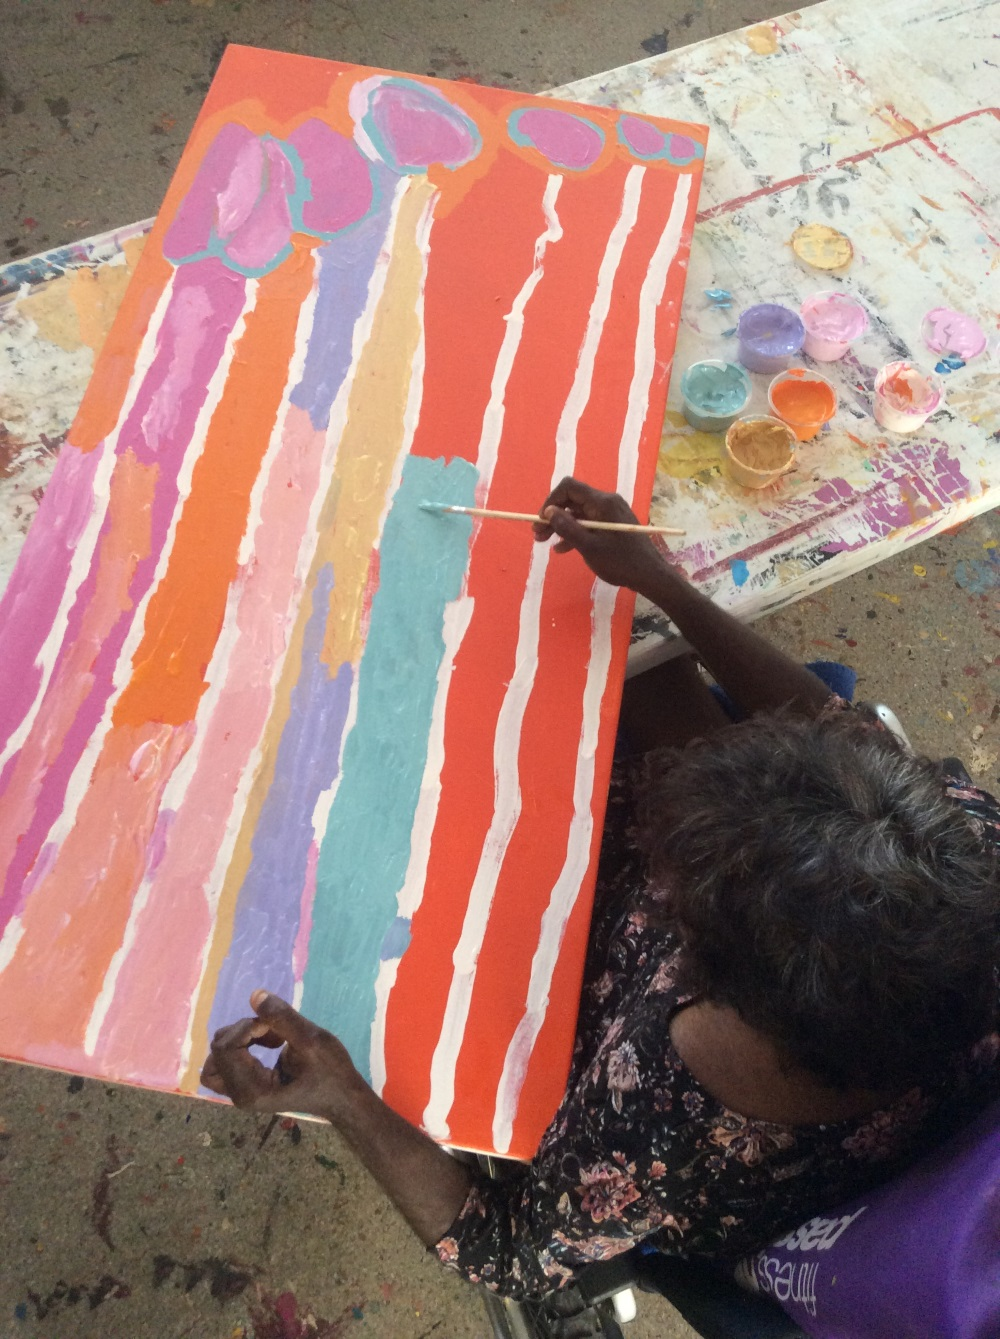 Artist Lisa Uhl painting in the Mangkaja Art Centre studio in Fitzroy Crossing. Nov 2017 © AGWA 2017